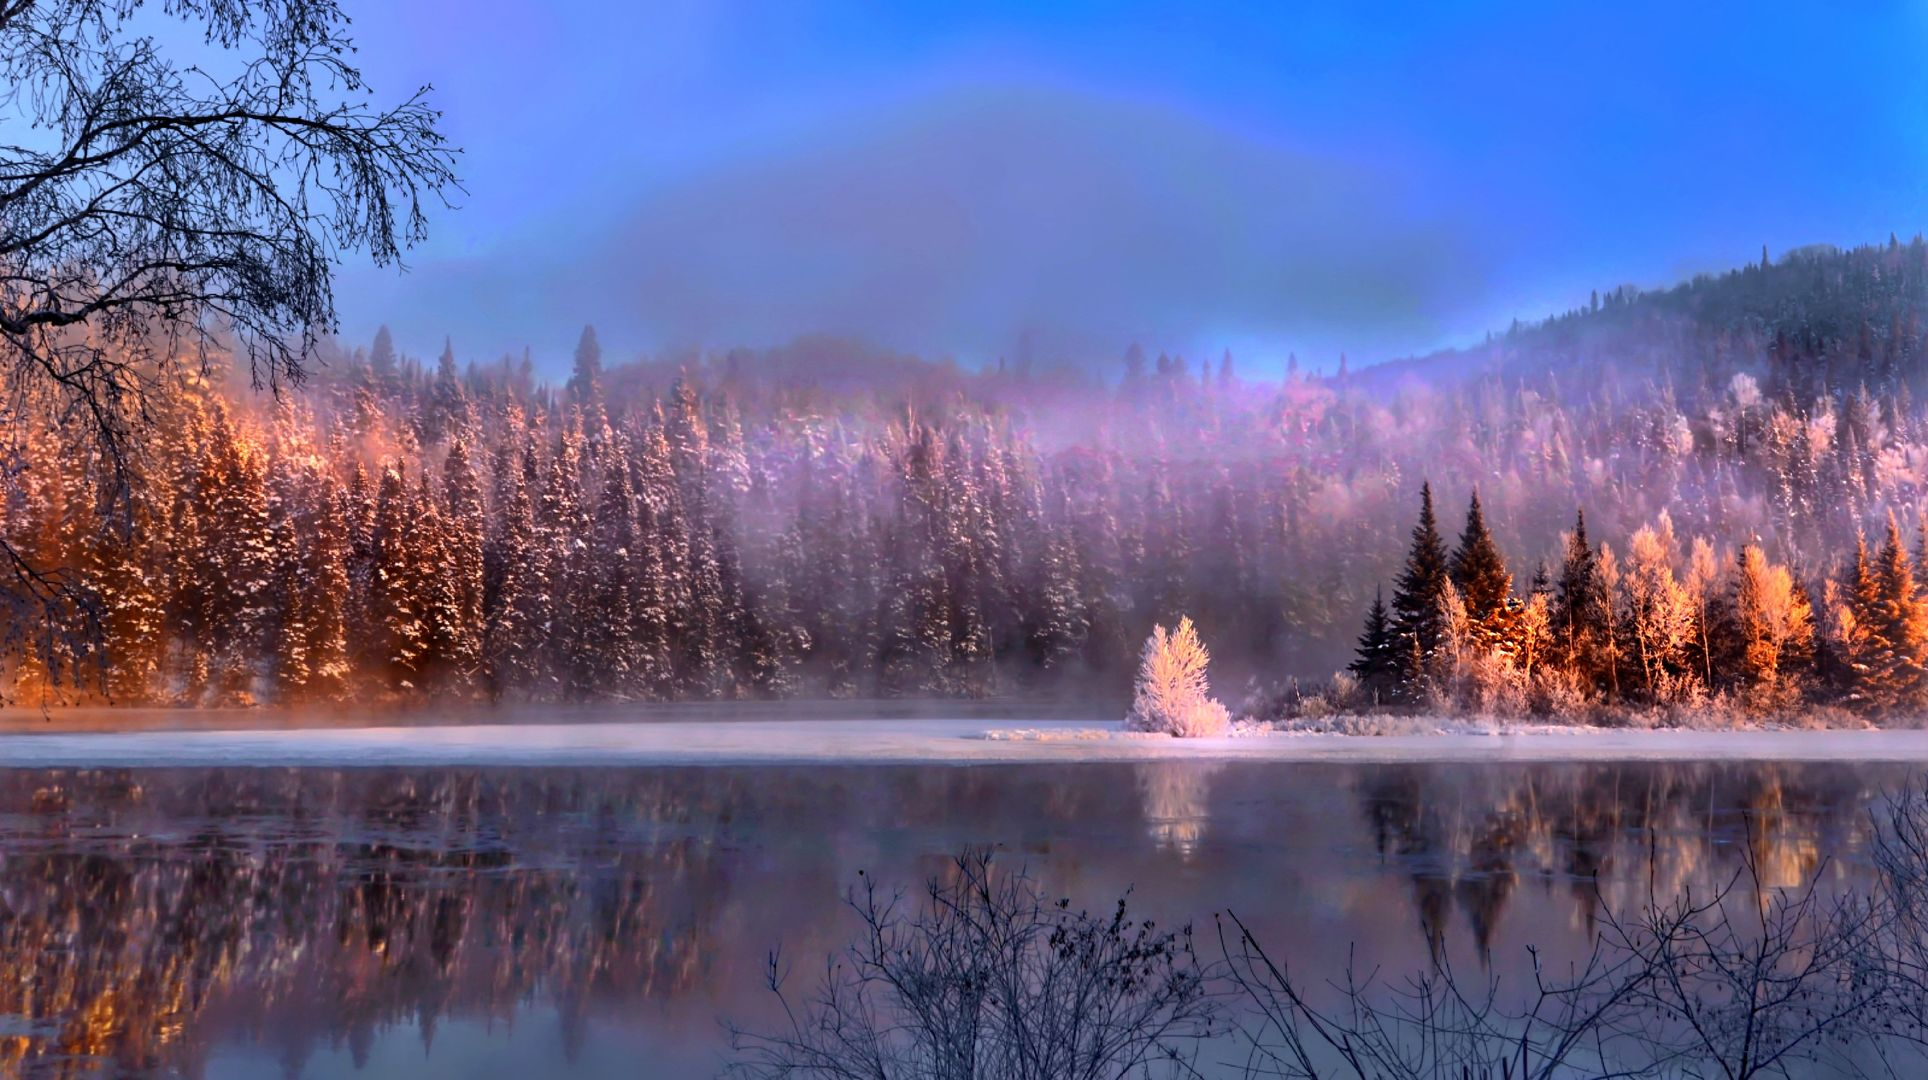 landscape forest trees lake snow sky blue